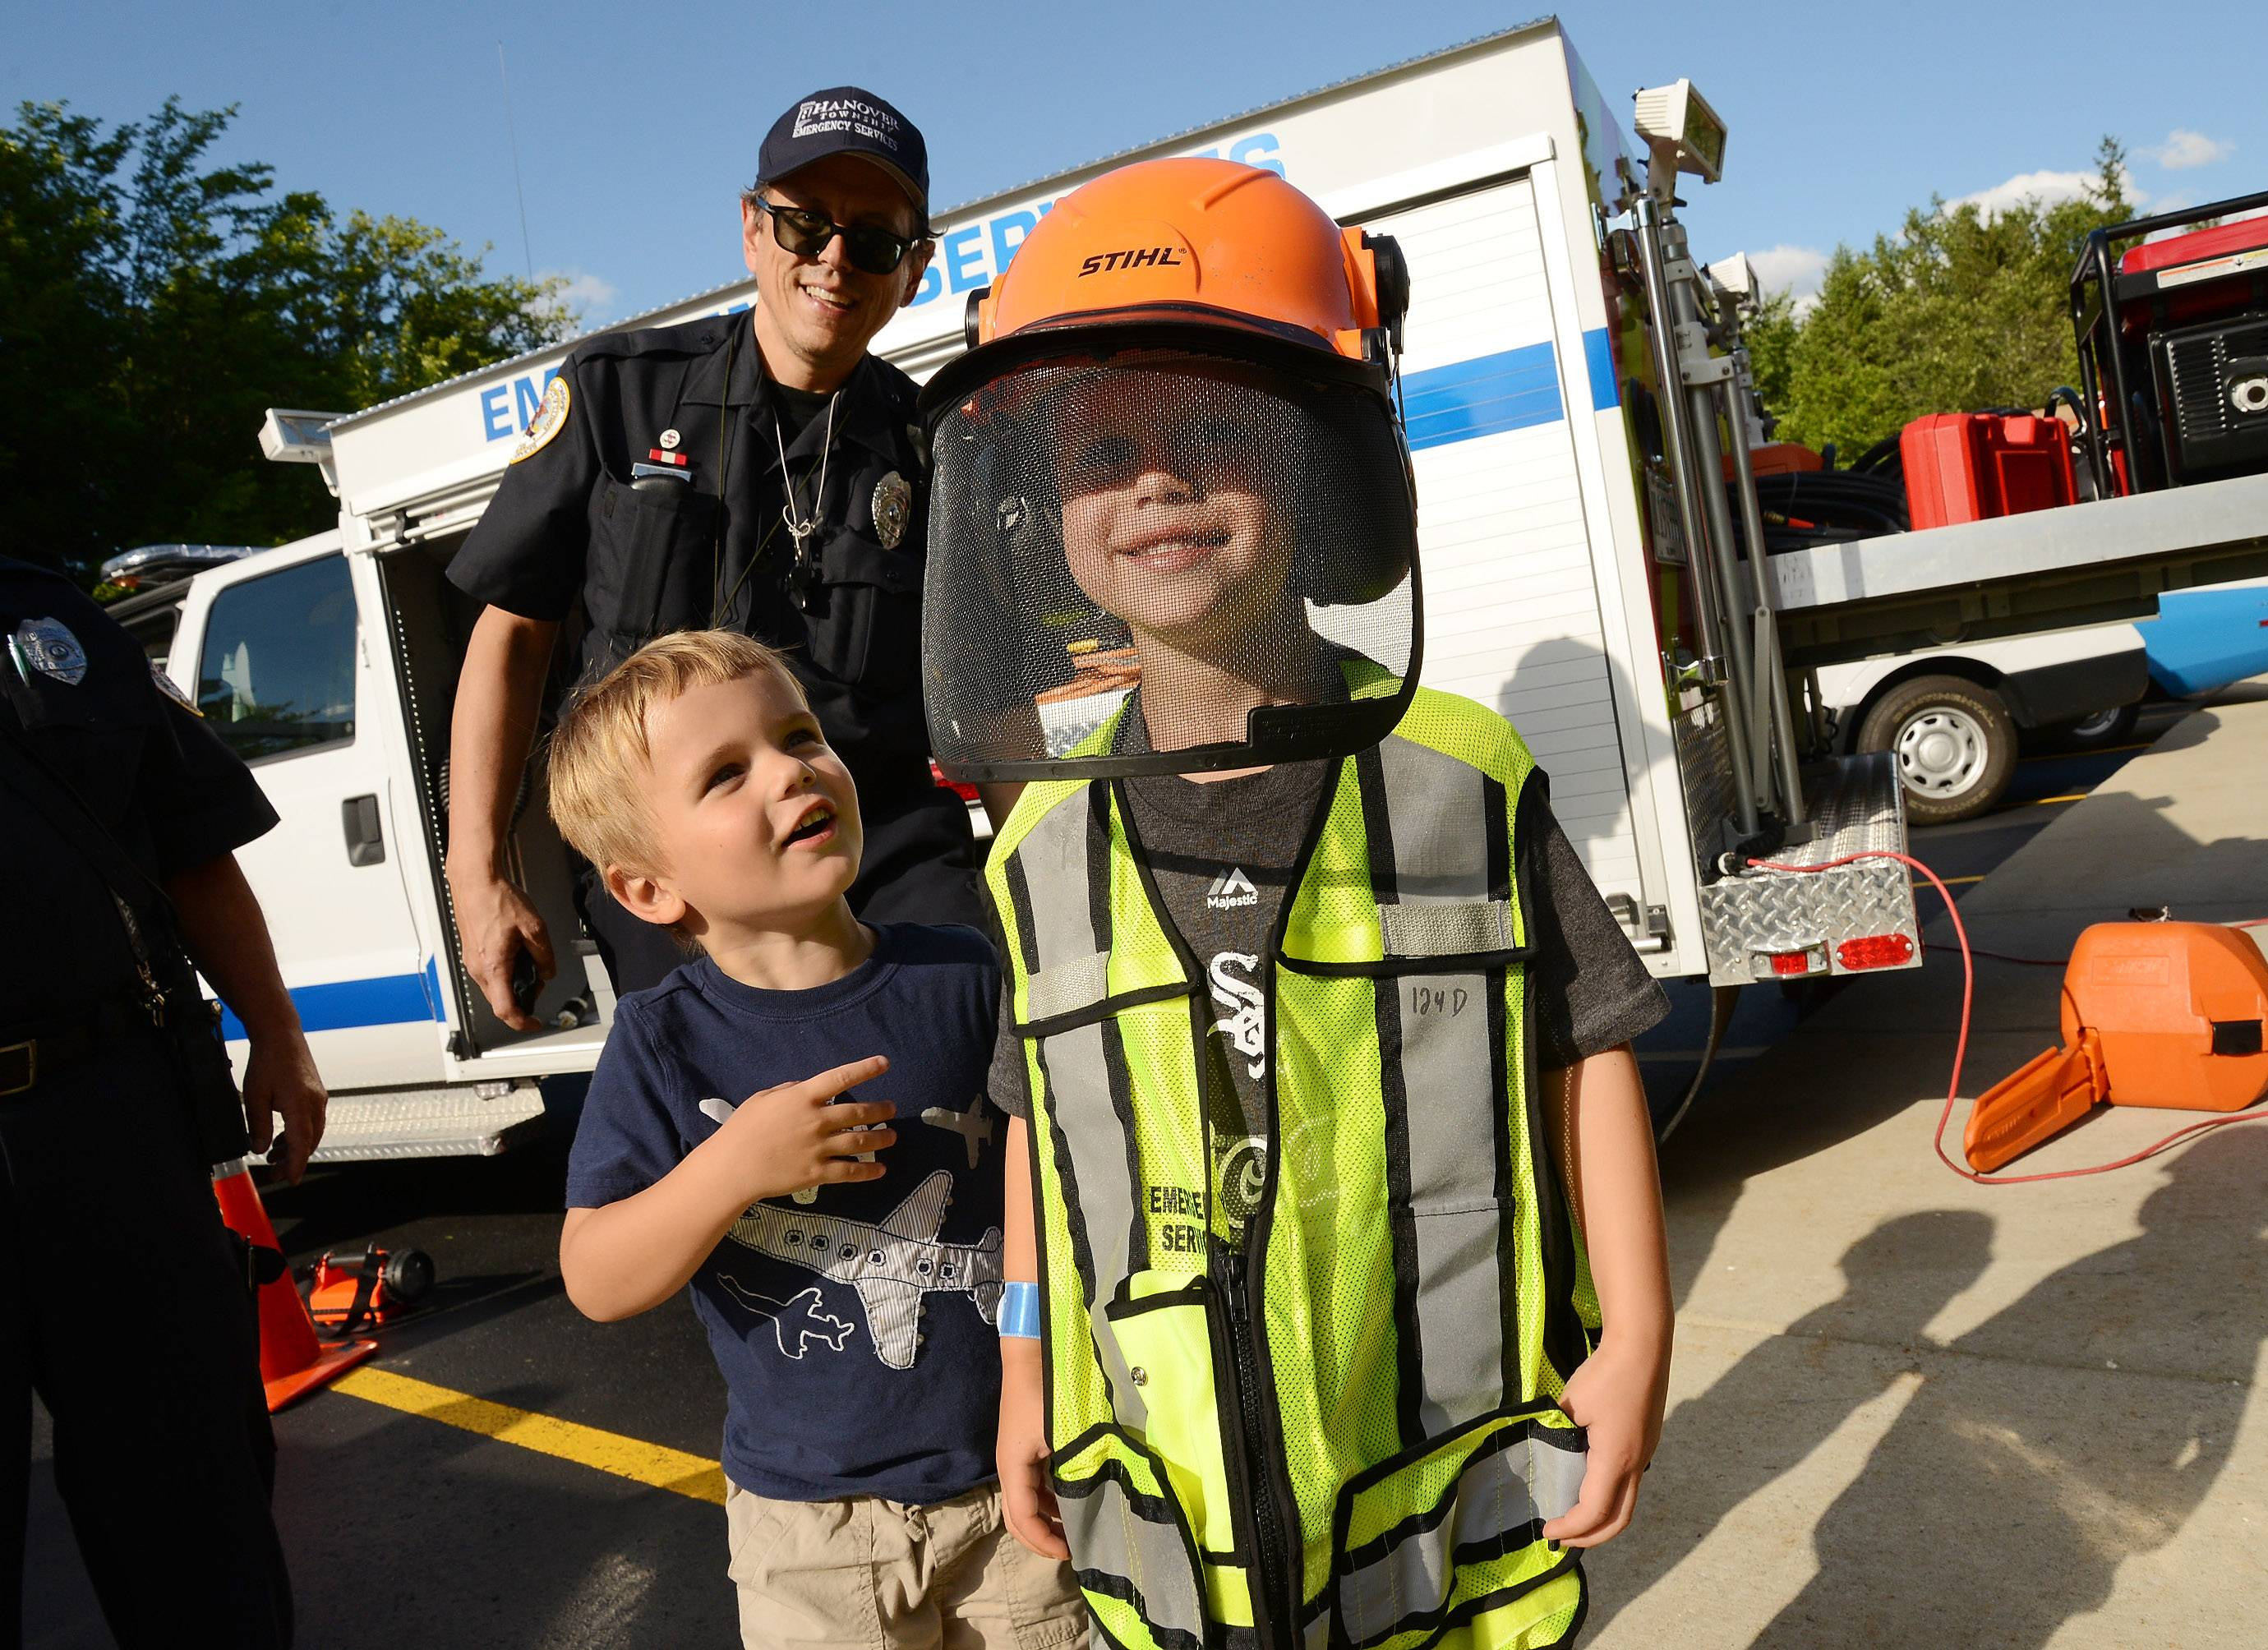 Eli Andrews, 6, right, and his brother Zeke, 3, try on some emergency equipment with the help of Hanover Township Emergency Services volunteer Edward Novit.